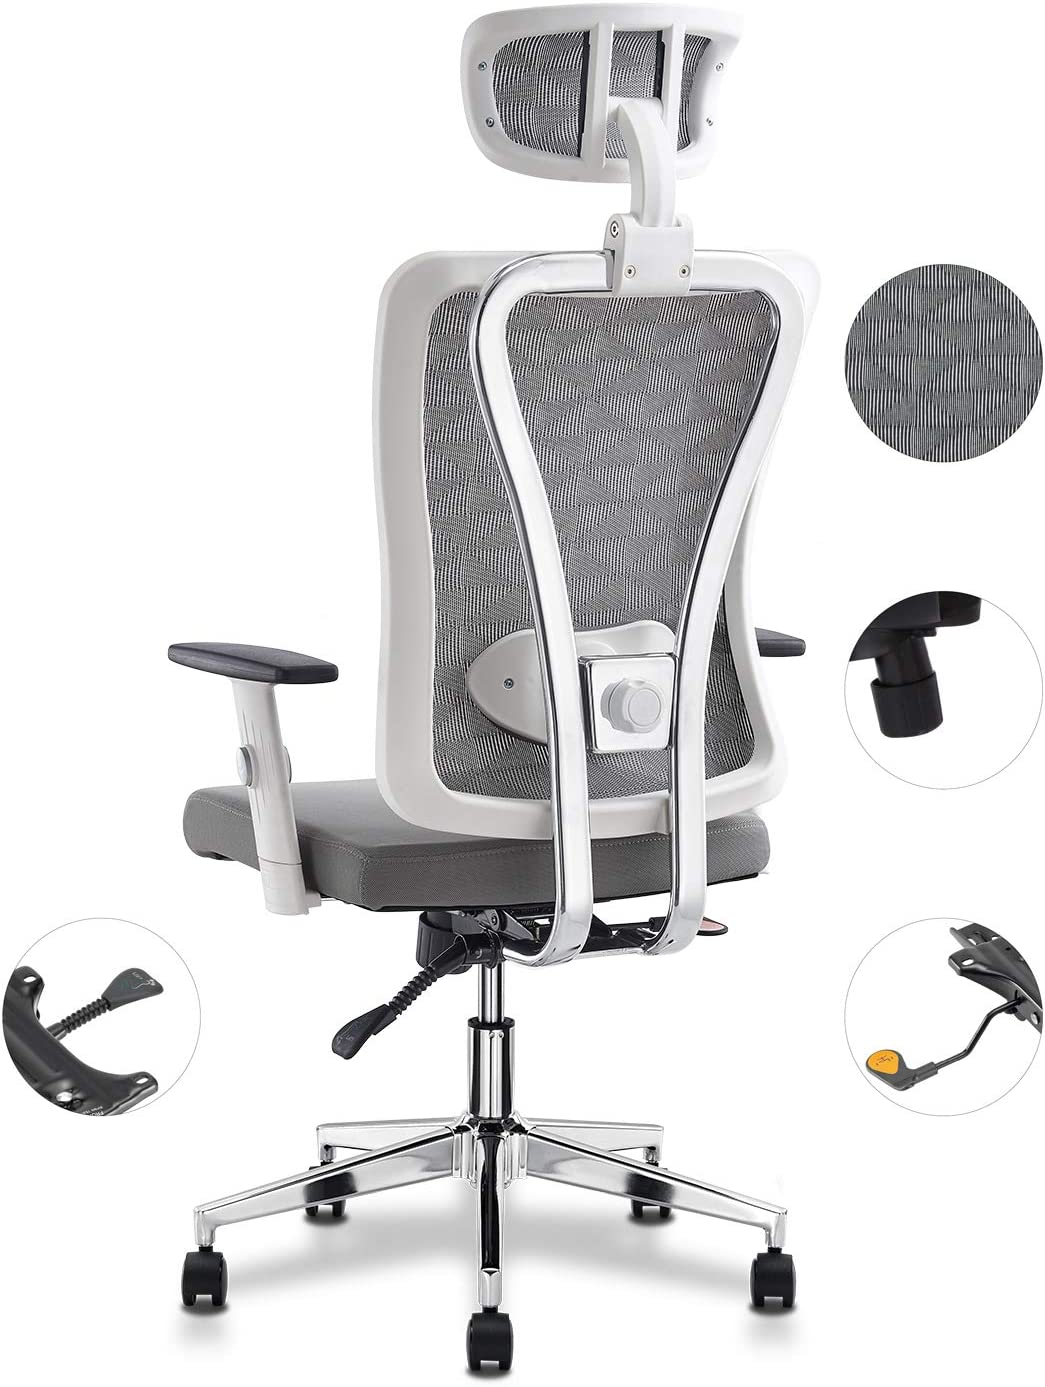 Cedric White Ergonomic Adjustable Office Chair with Adjustable Lumbar Support-High Back with Thickening Sponge Seat Cushion-Adjustable Head-Arm Rests,Seat Height-Reclines Compliance with EU EN1335